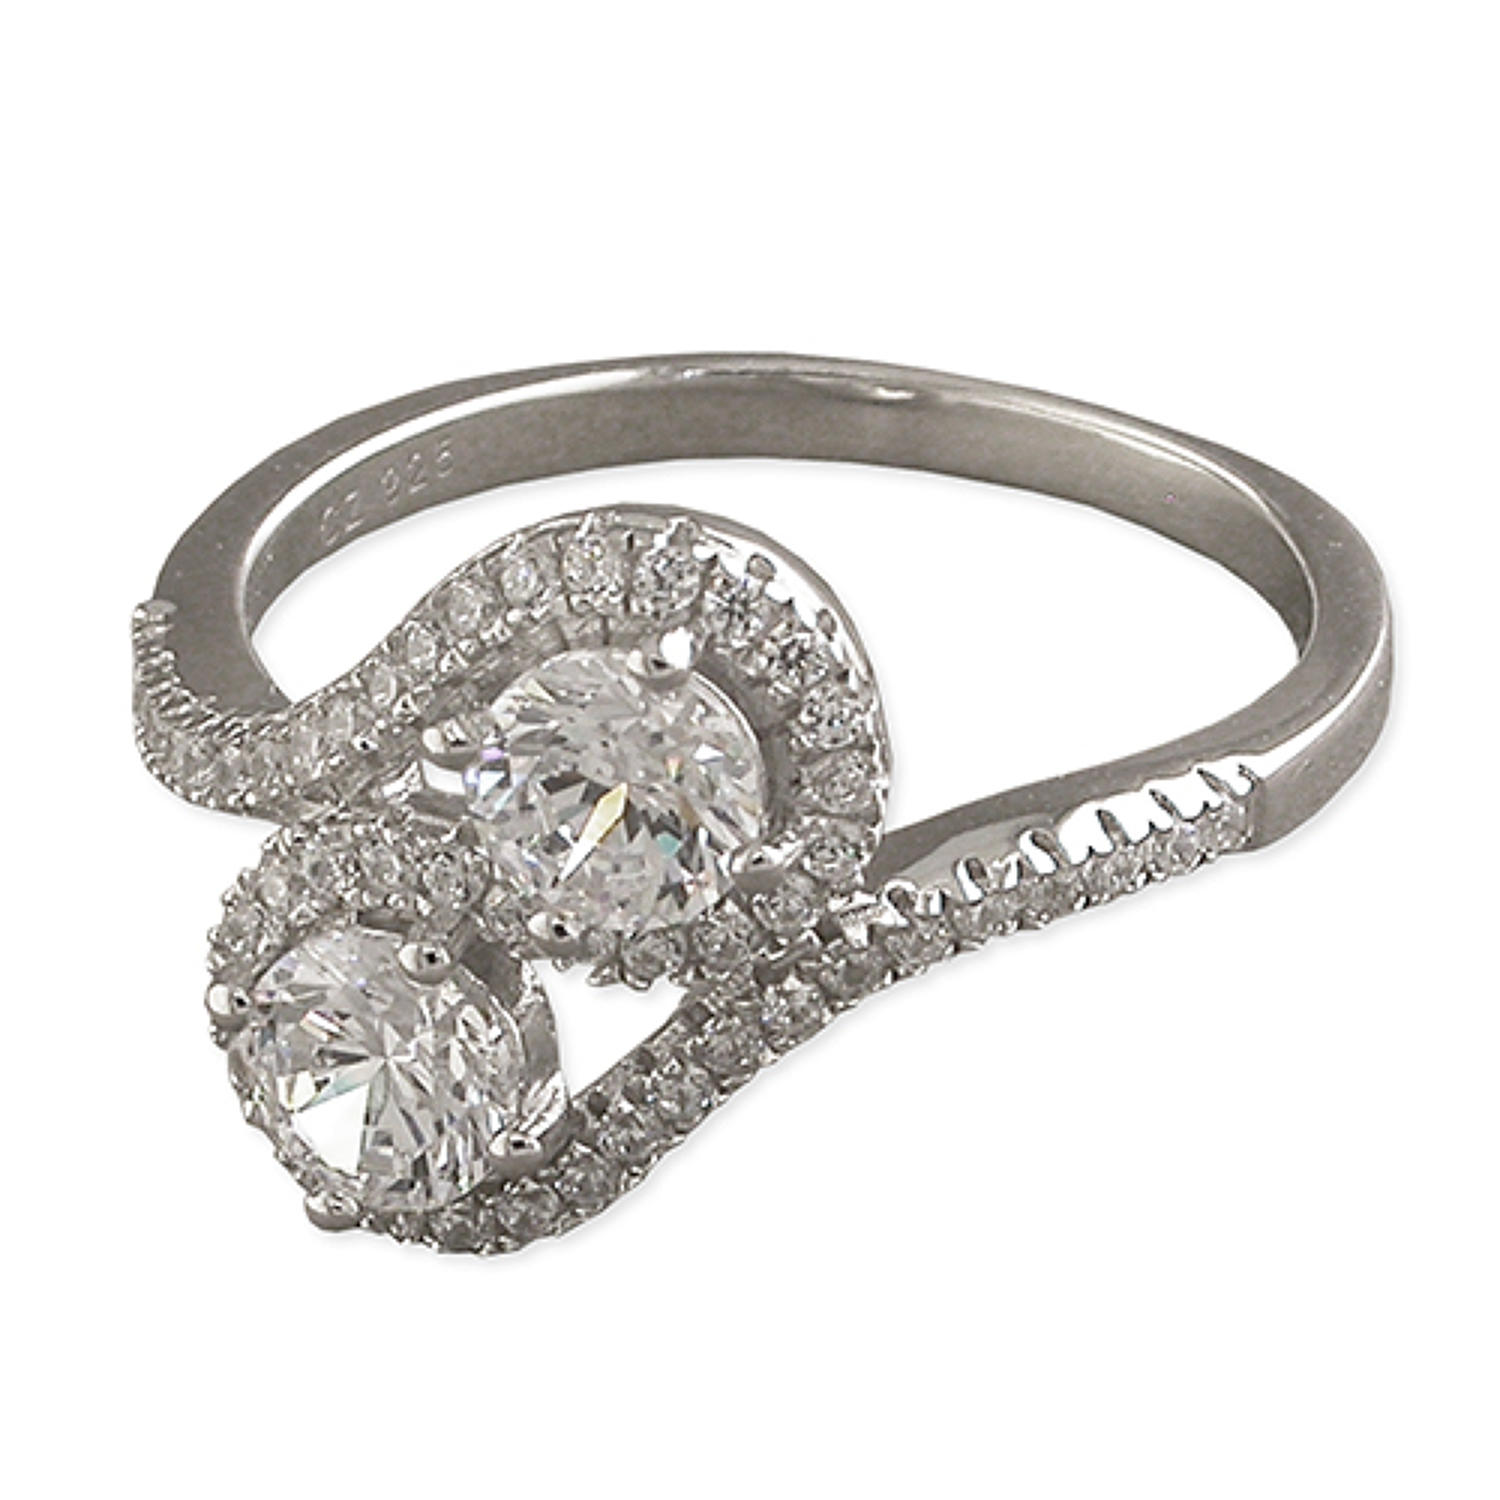 Silver Plated Double Loop Cubic Zirconia Ring